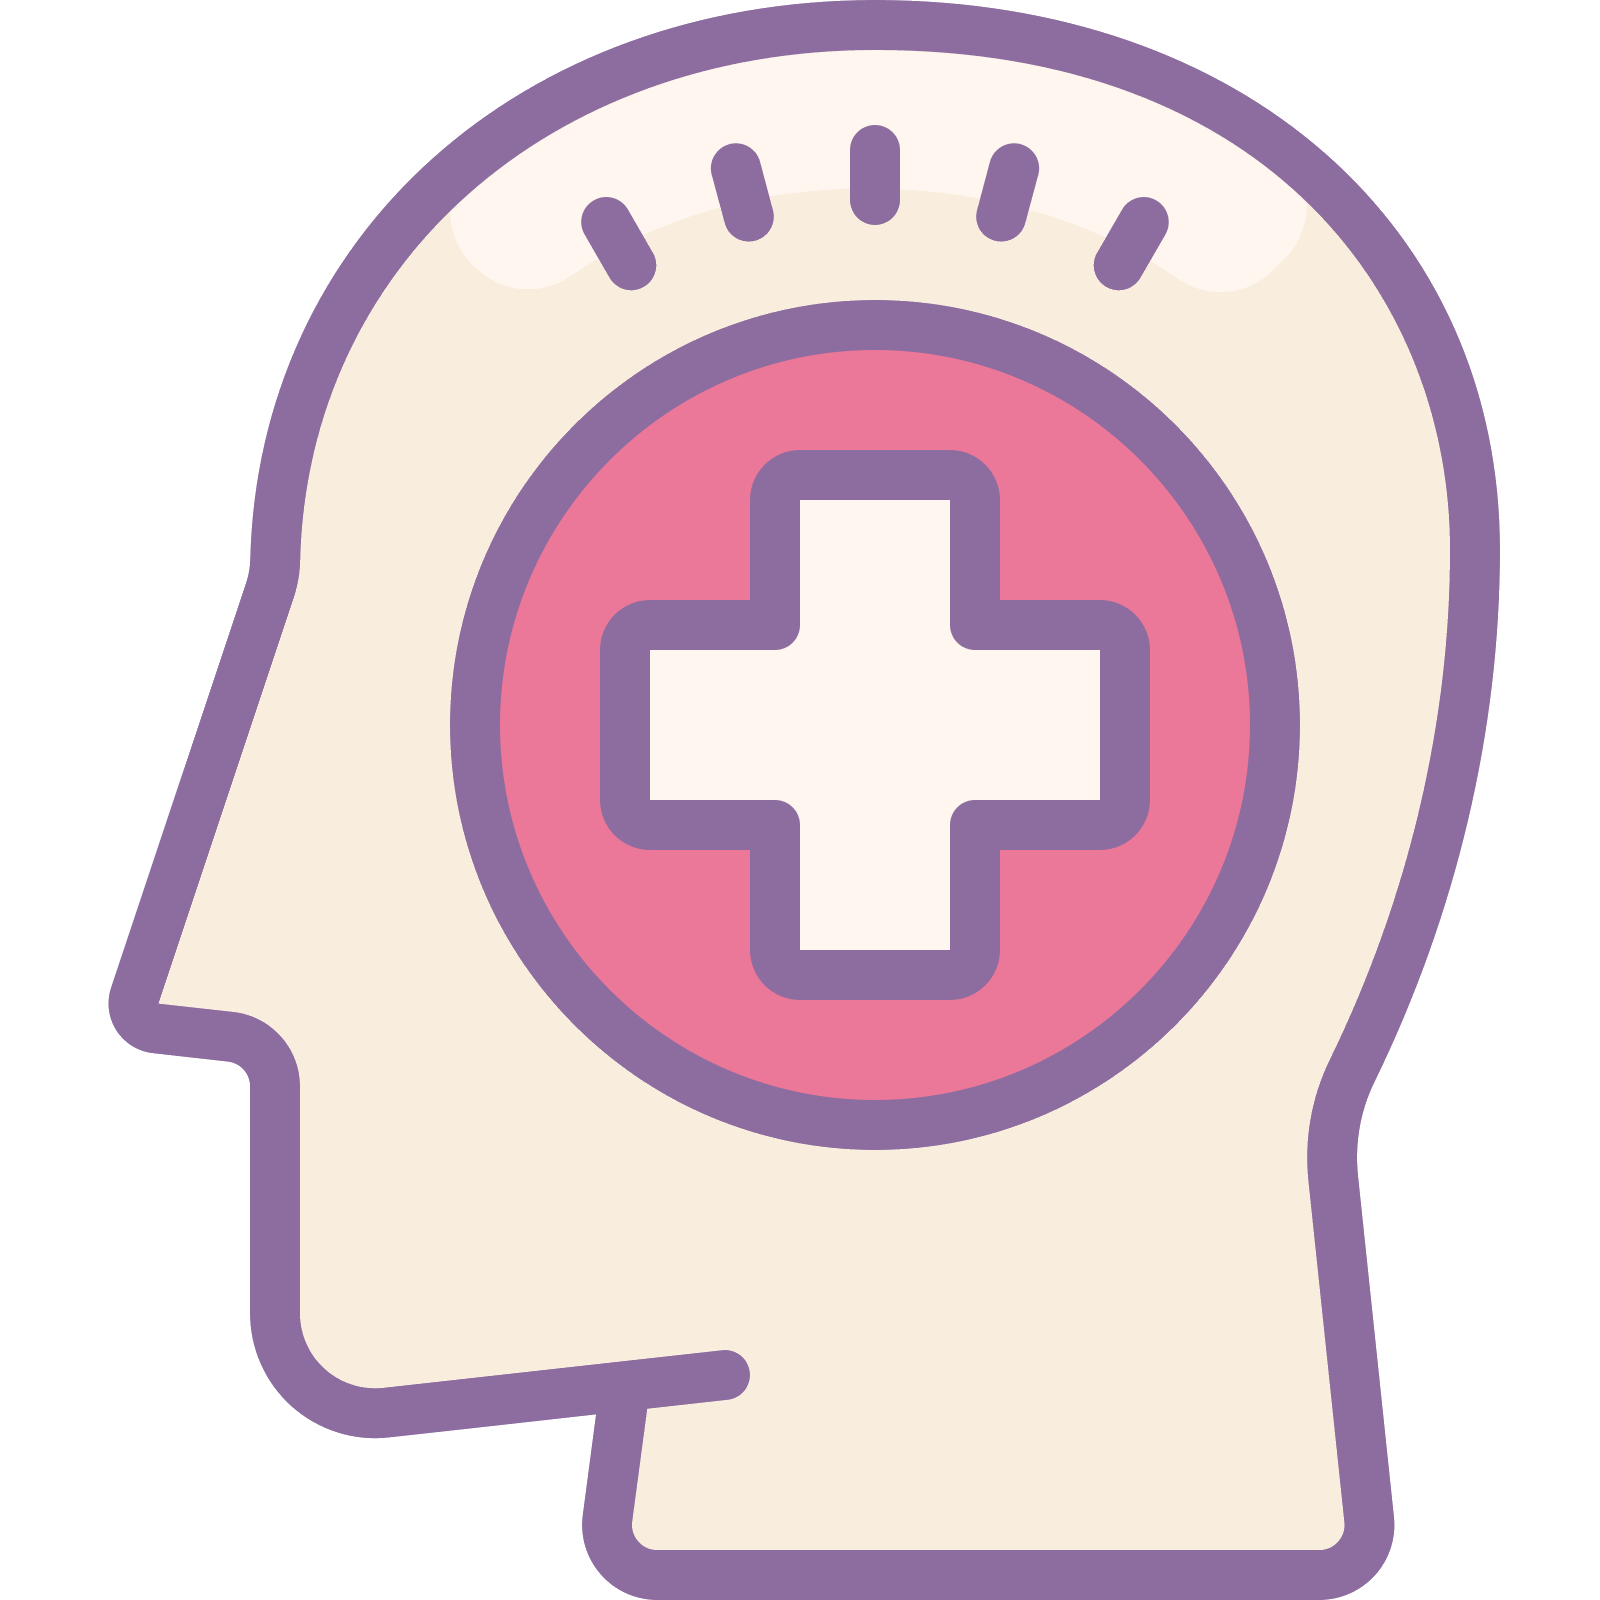 Mental health png. Icon free download and